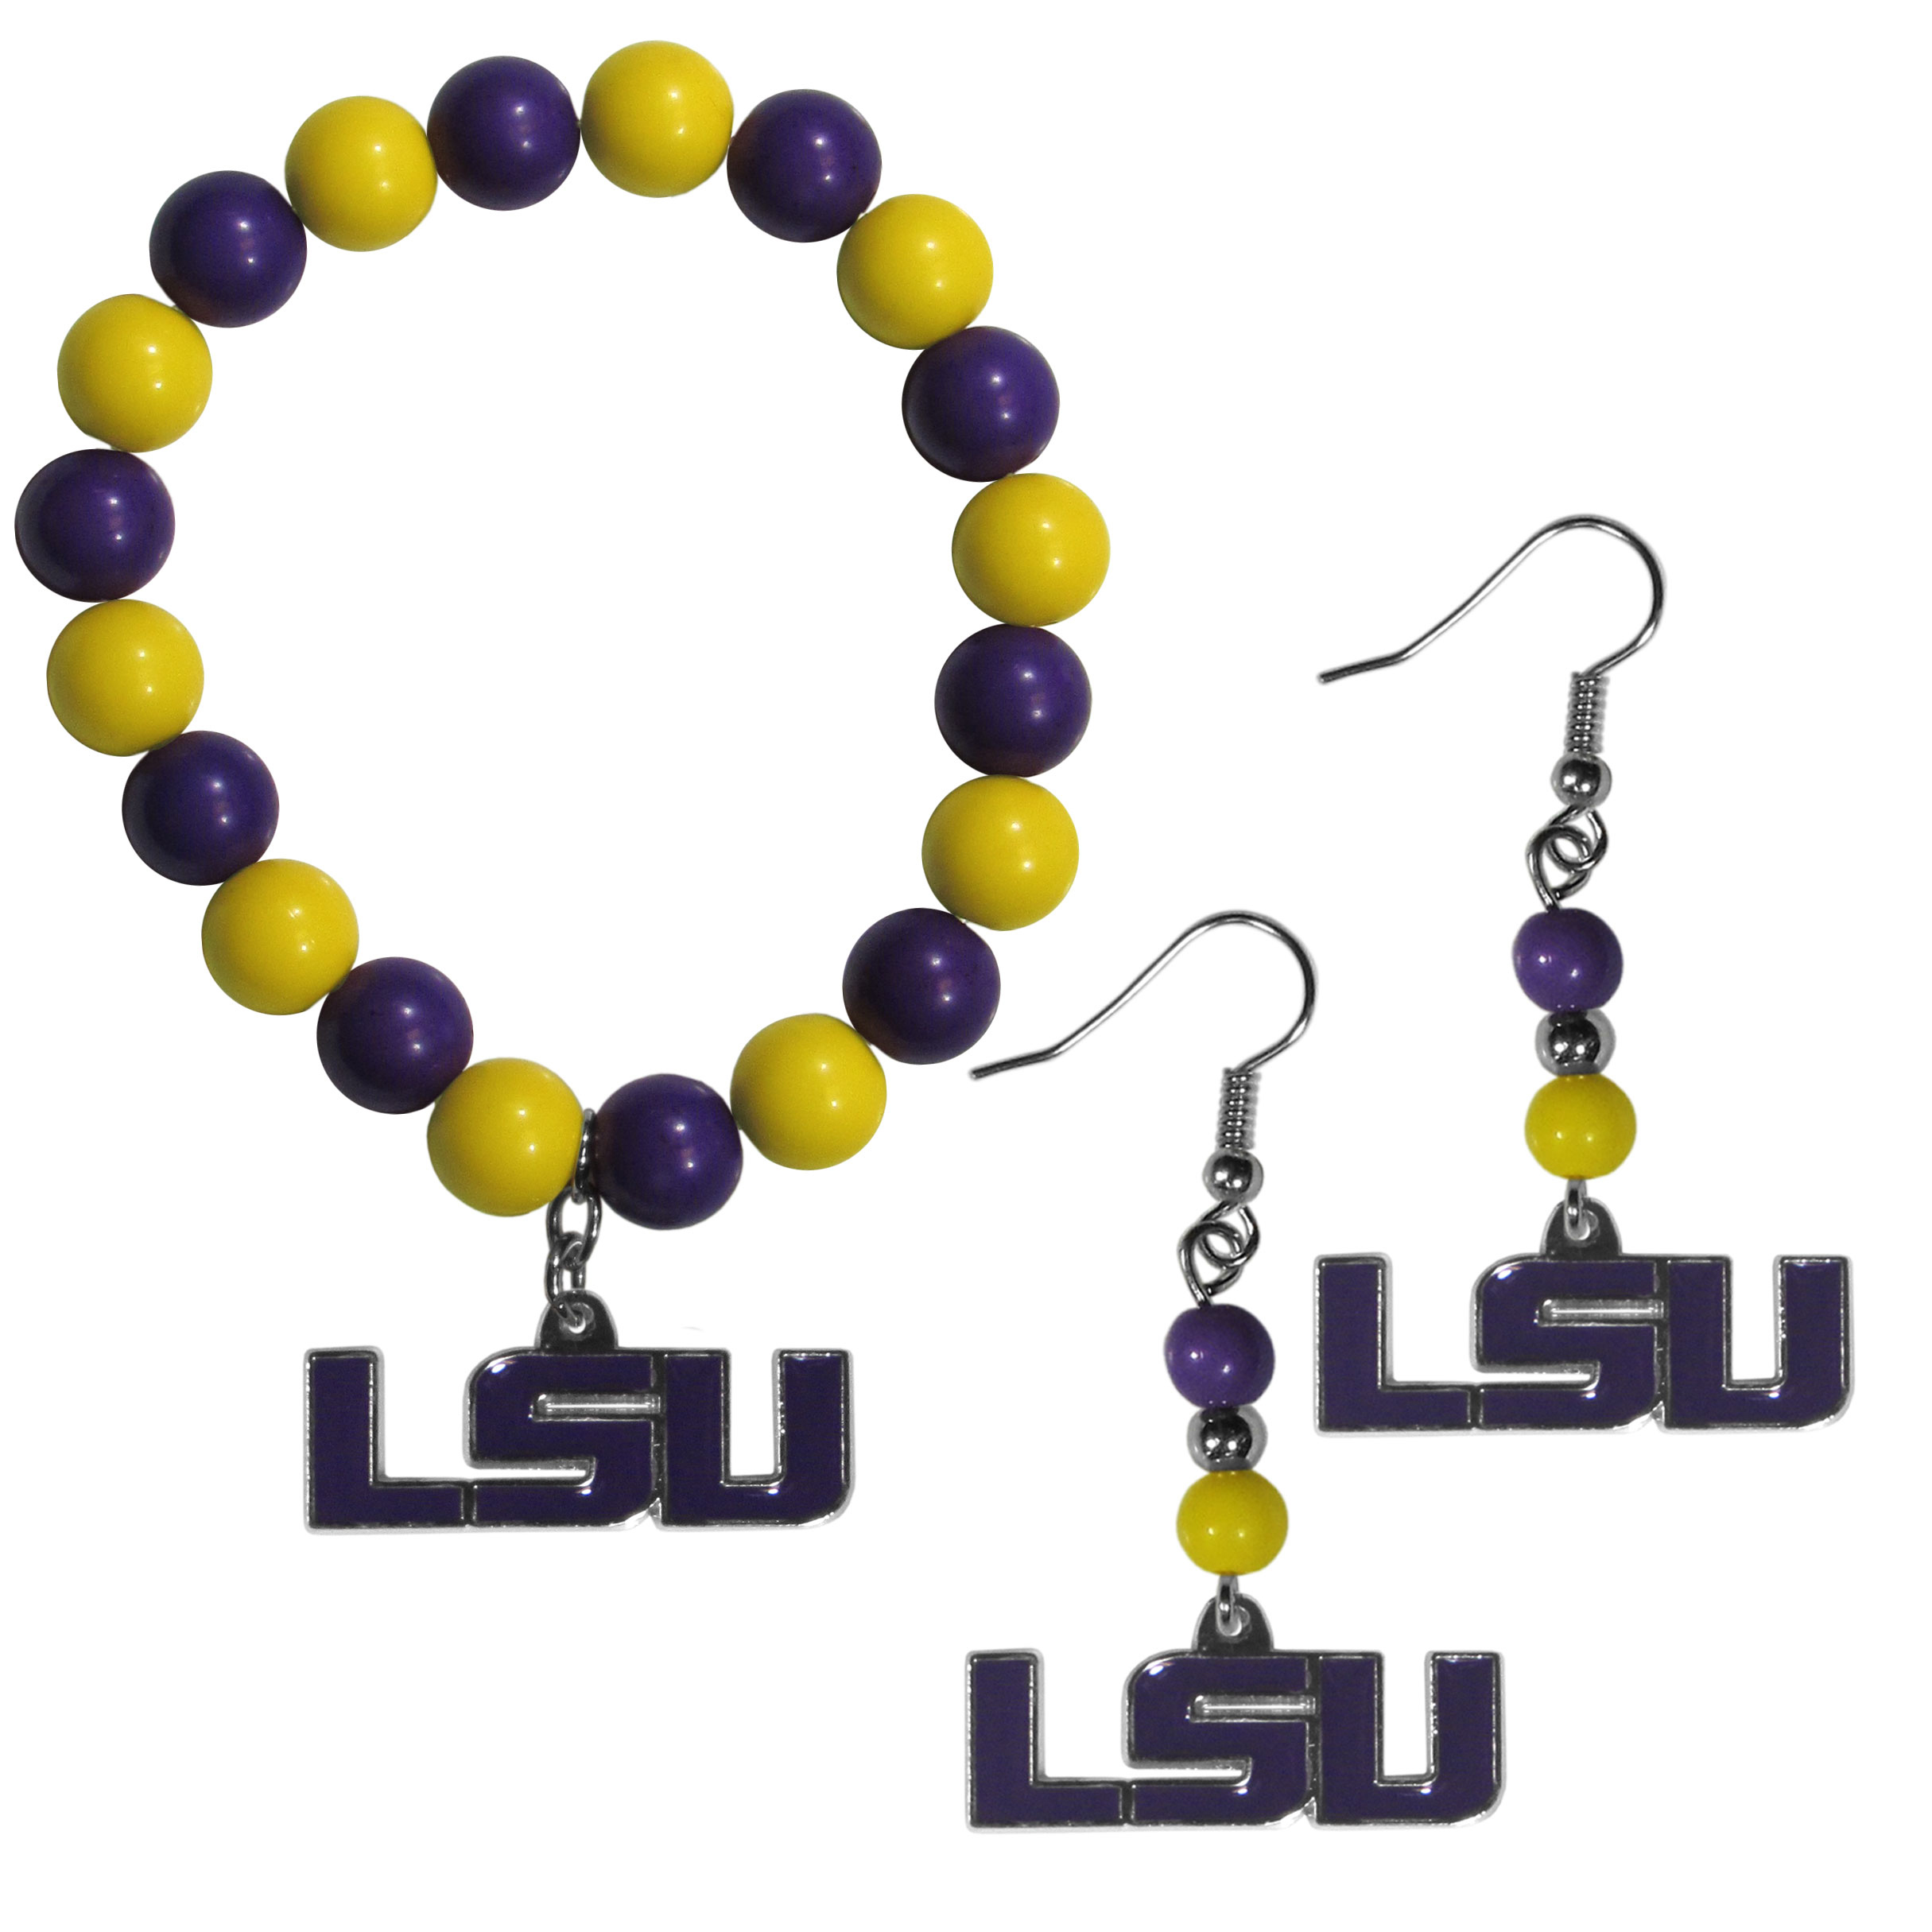 LSU Tigers Fan Bead Earrings and Bracelet Set - This fun and colorful LSU Tigers fan bead jewelry set is fun and casual with eye-catching beads in bright team colors. The fashionable dangle earrings feature a team colored beads that drop down to a carved and enameled charm. The stretch bracelet has larger matching beads that make a striking statement and have a matching team charm. These sassy yet sporty jewelry pieces make a perfect gift for any female fan. Spice up your game-day outfit with these fun colorful earrings and bracelet that are also cute enough for any day.